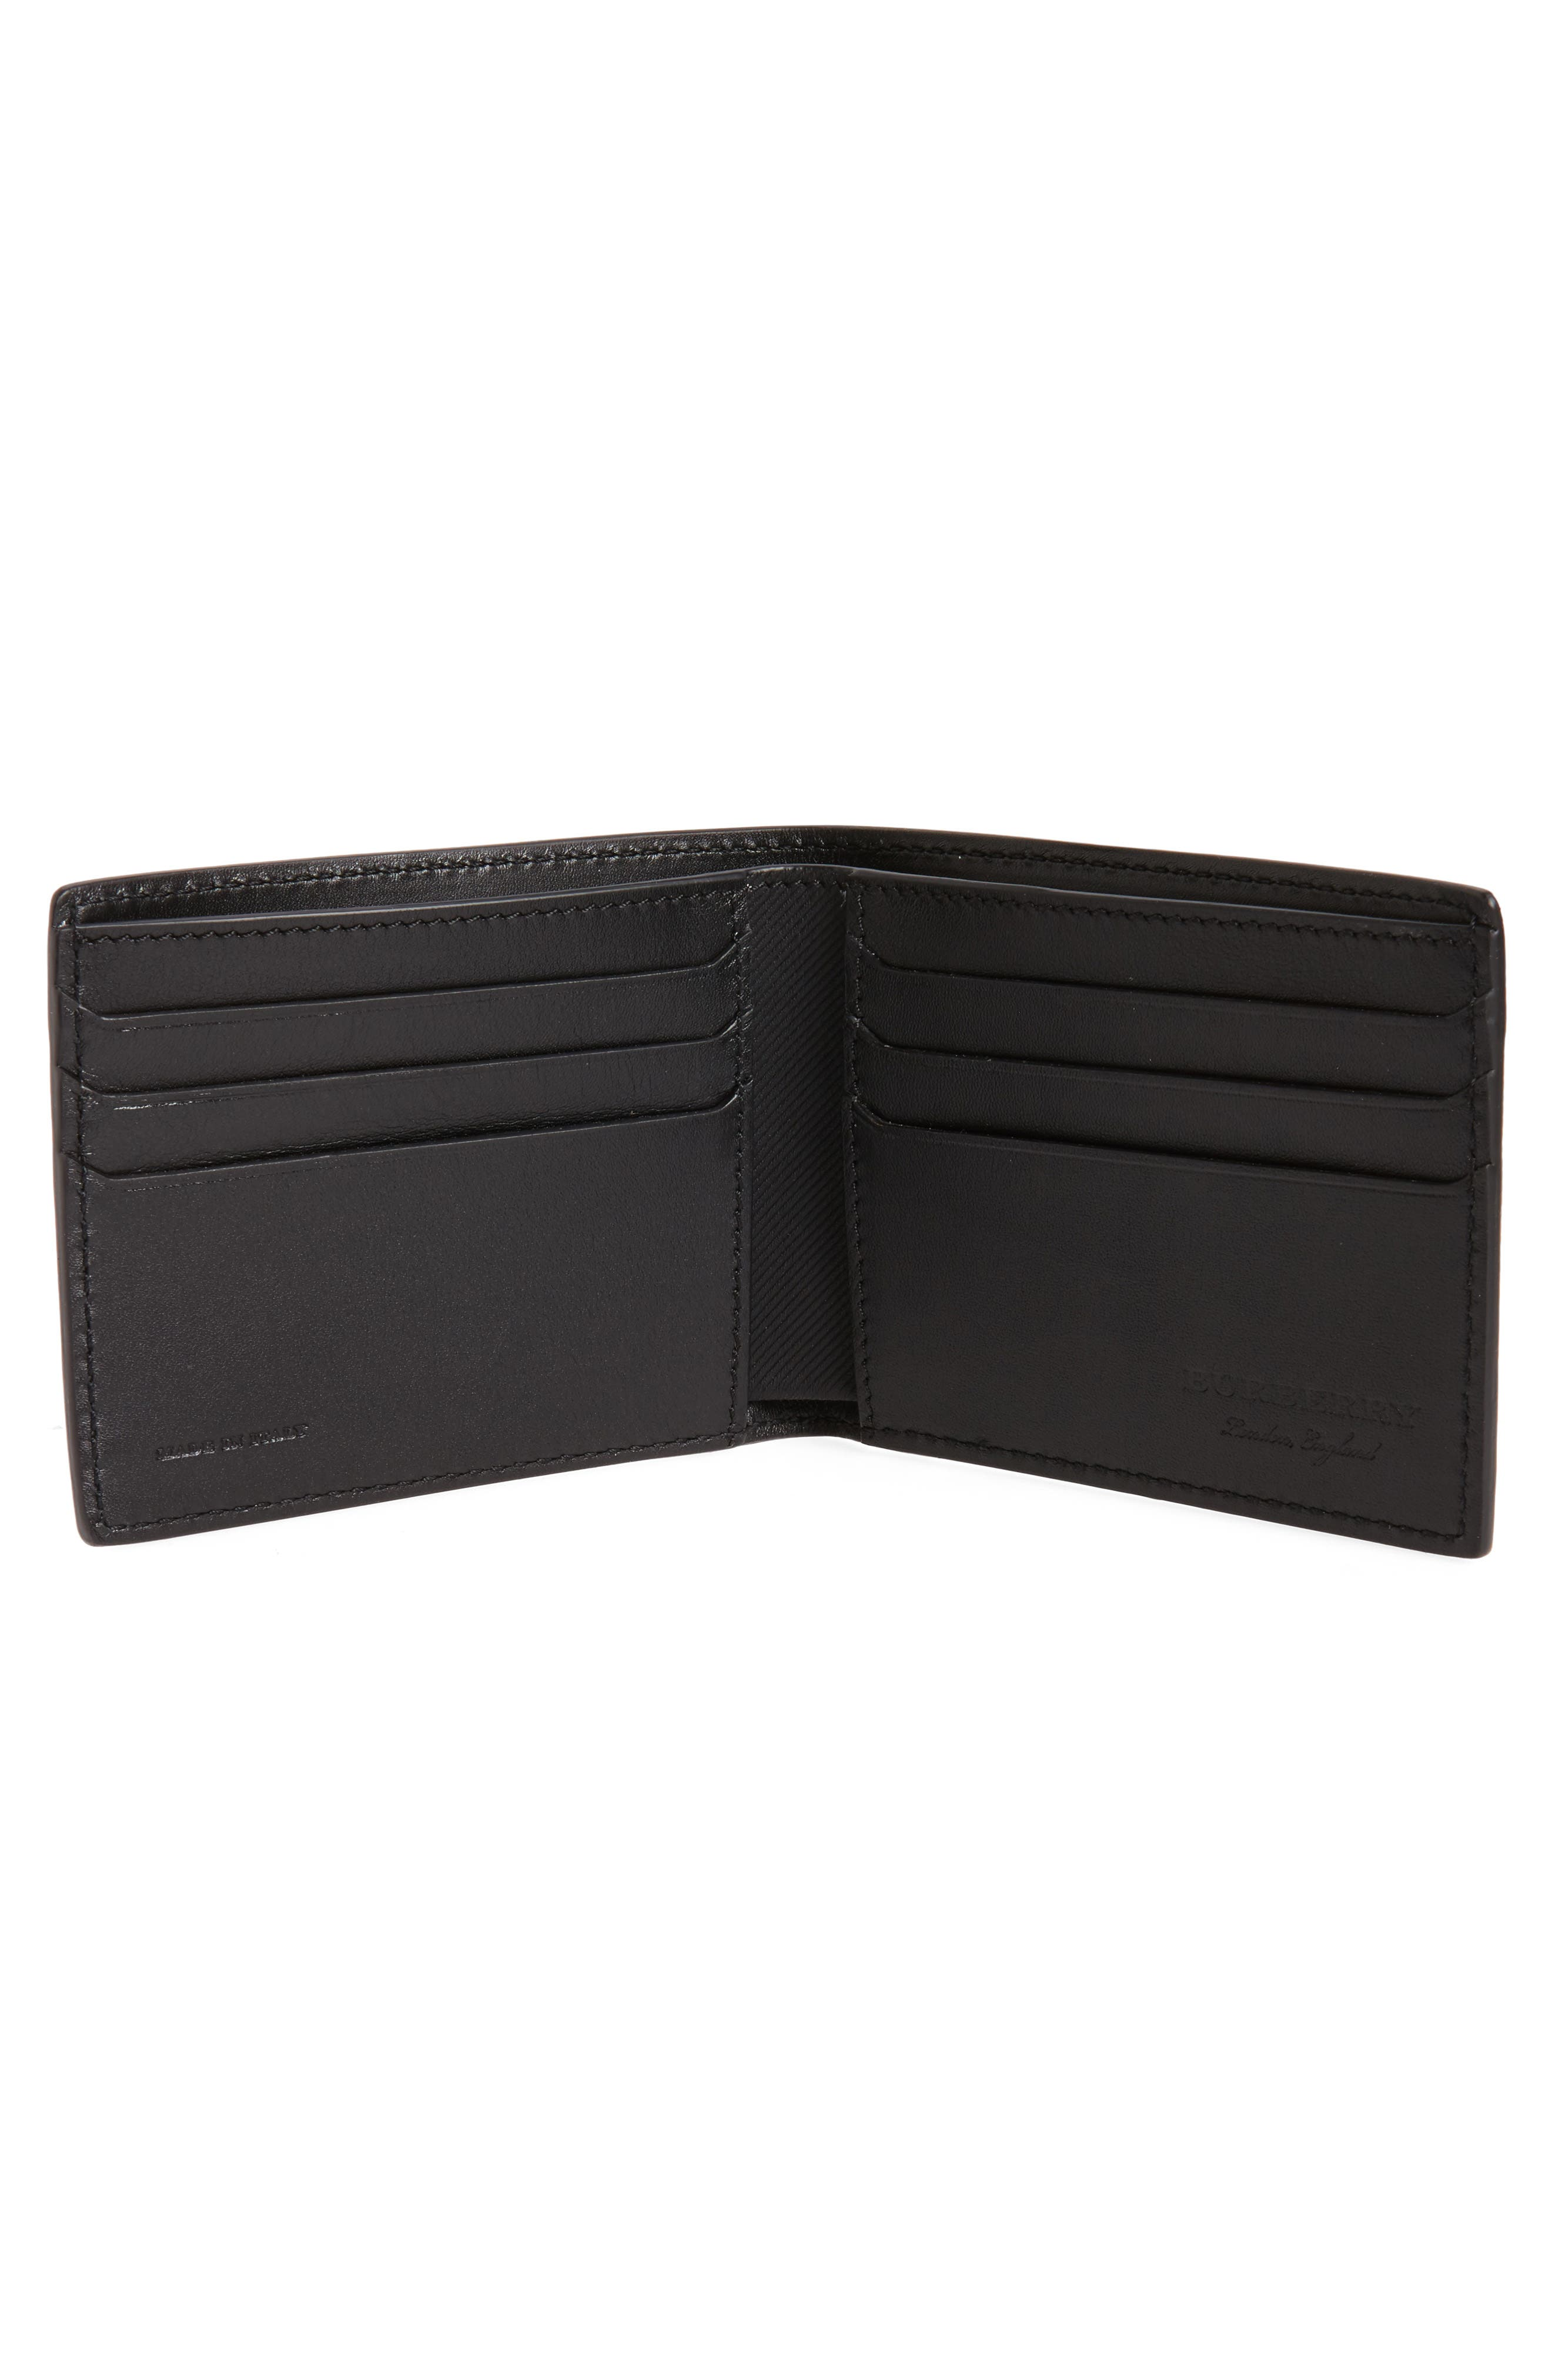 Alternate Image 2  - Burberry Leather Bifold Wallet